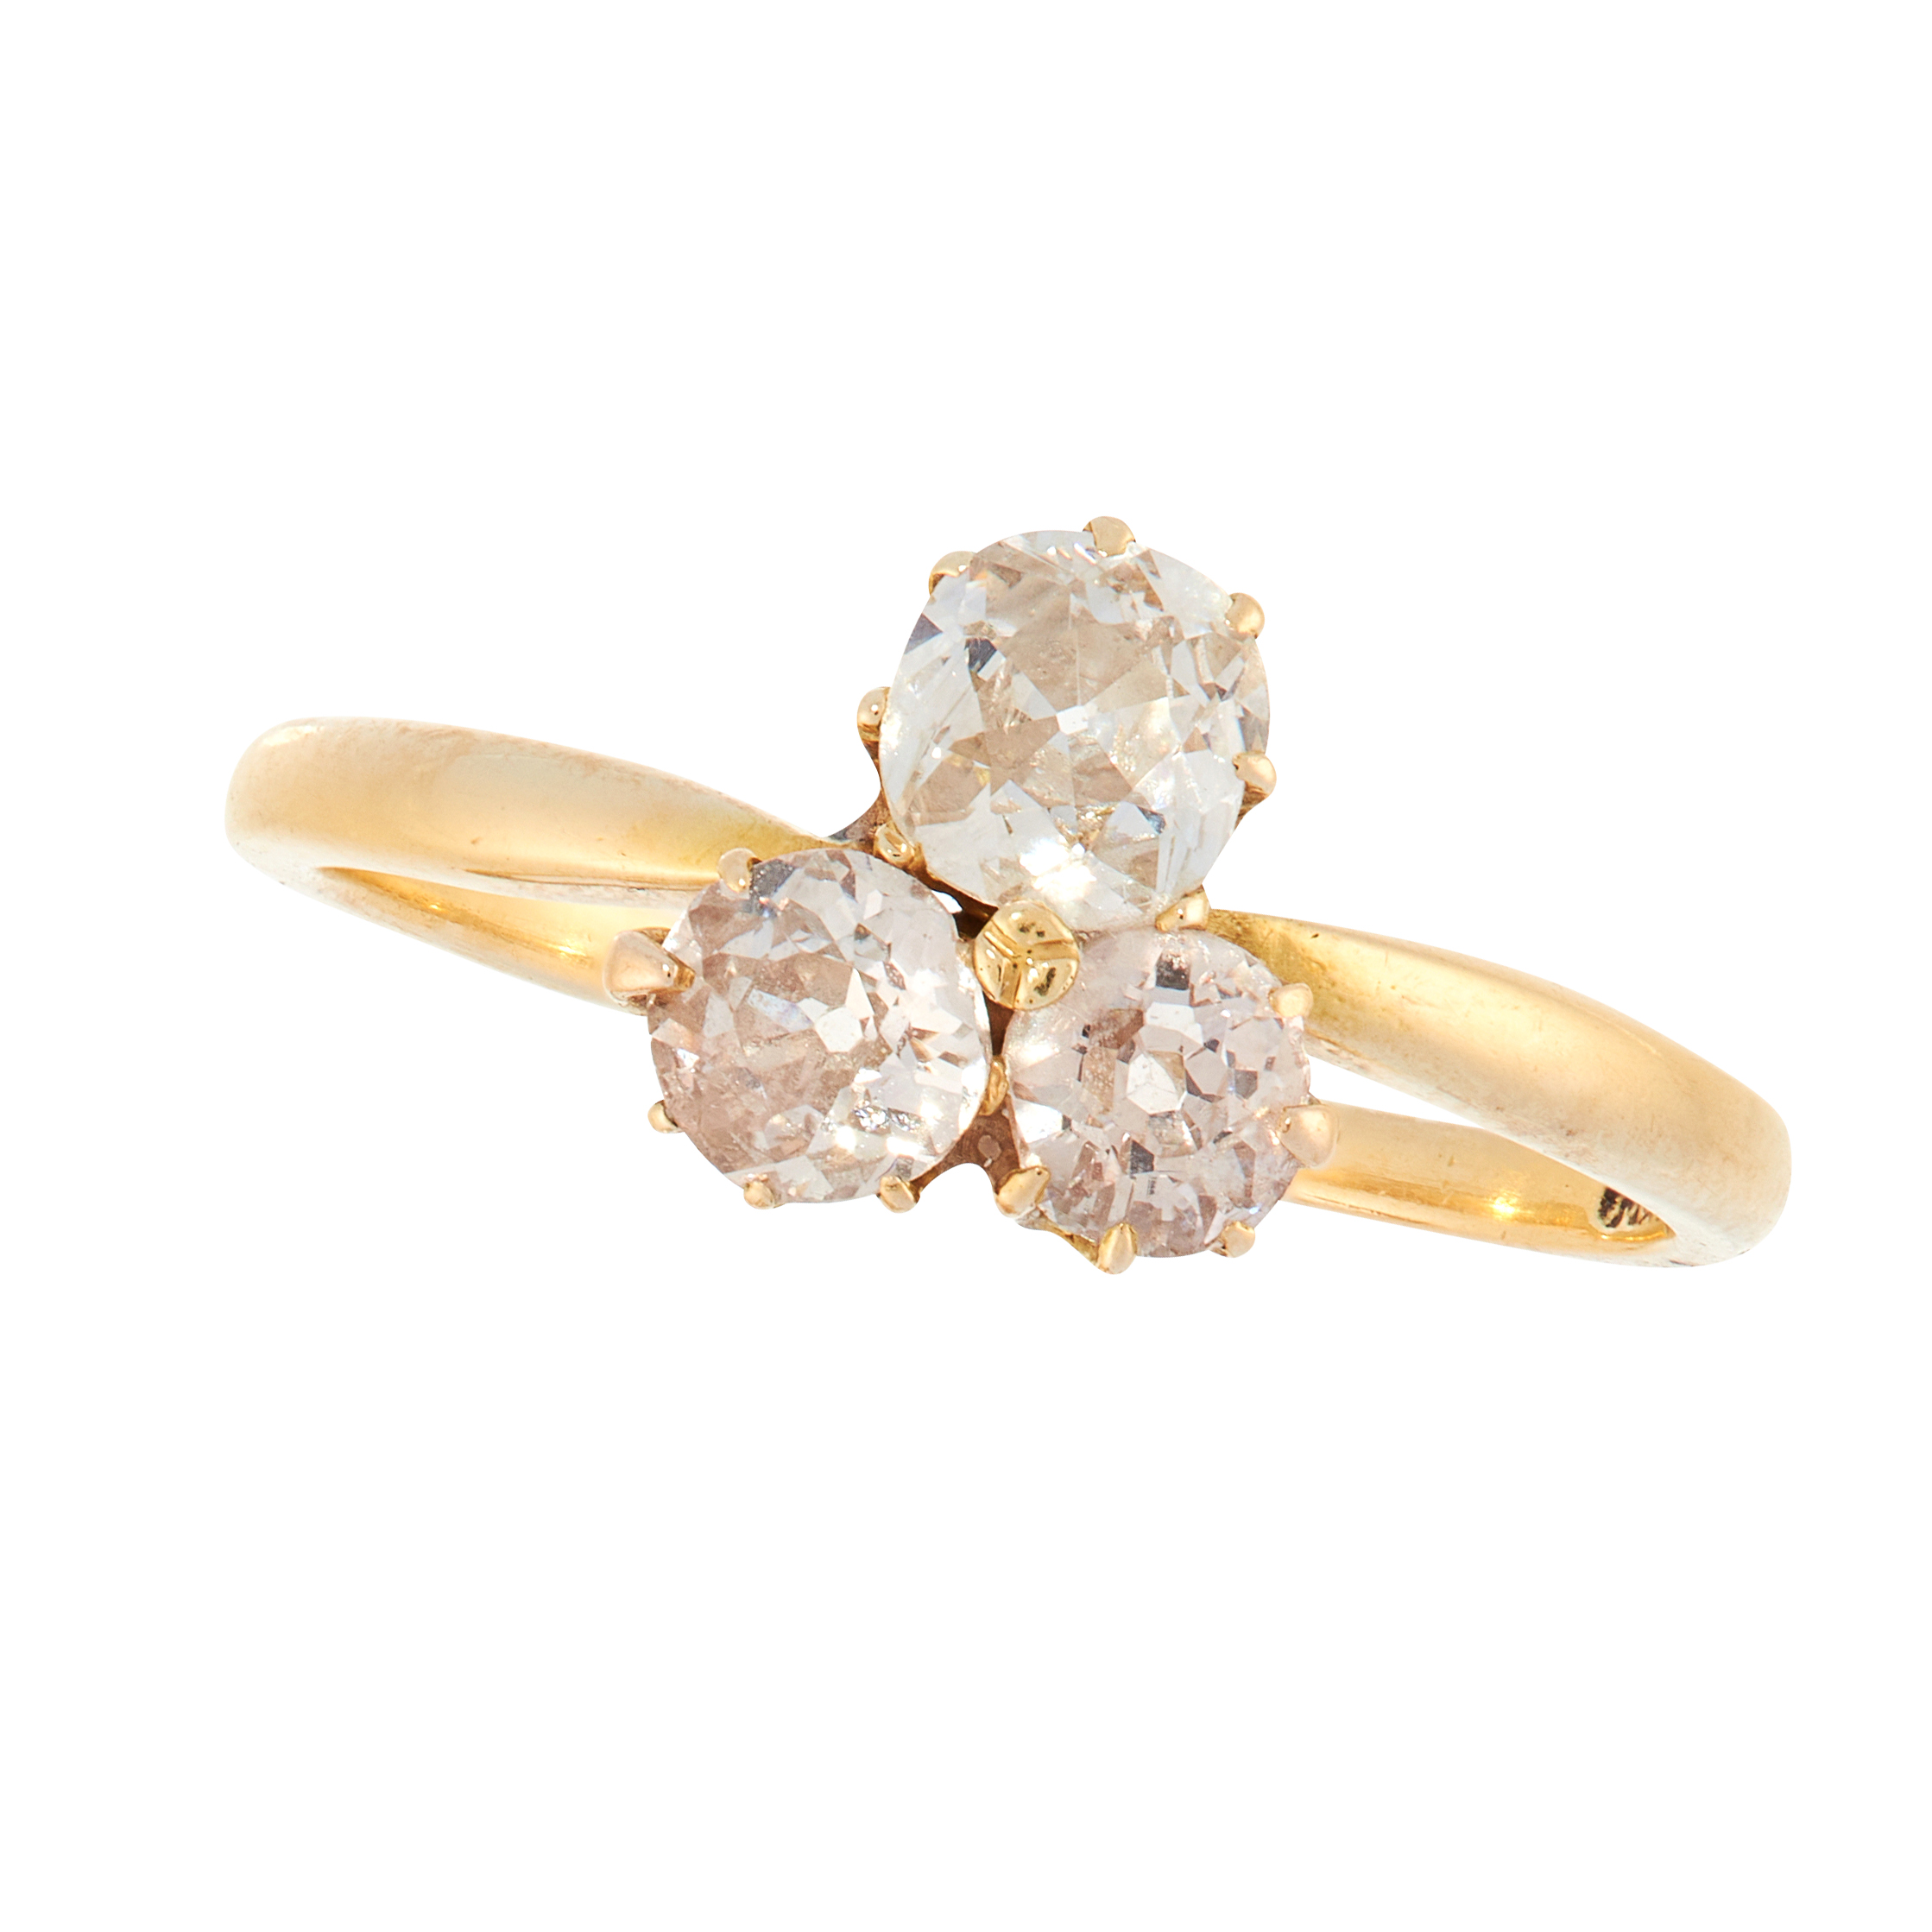 AN ANTIQUE DIAMOND DRESS RING, CIRCA 1900 in 18ct yellow gold, set with a trio of diamonds in a